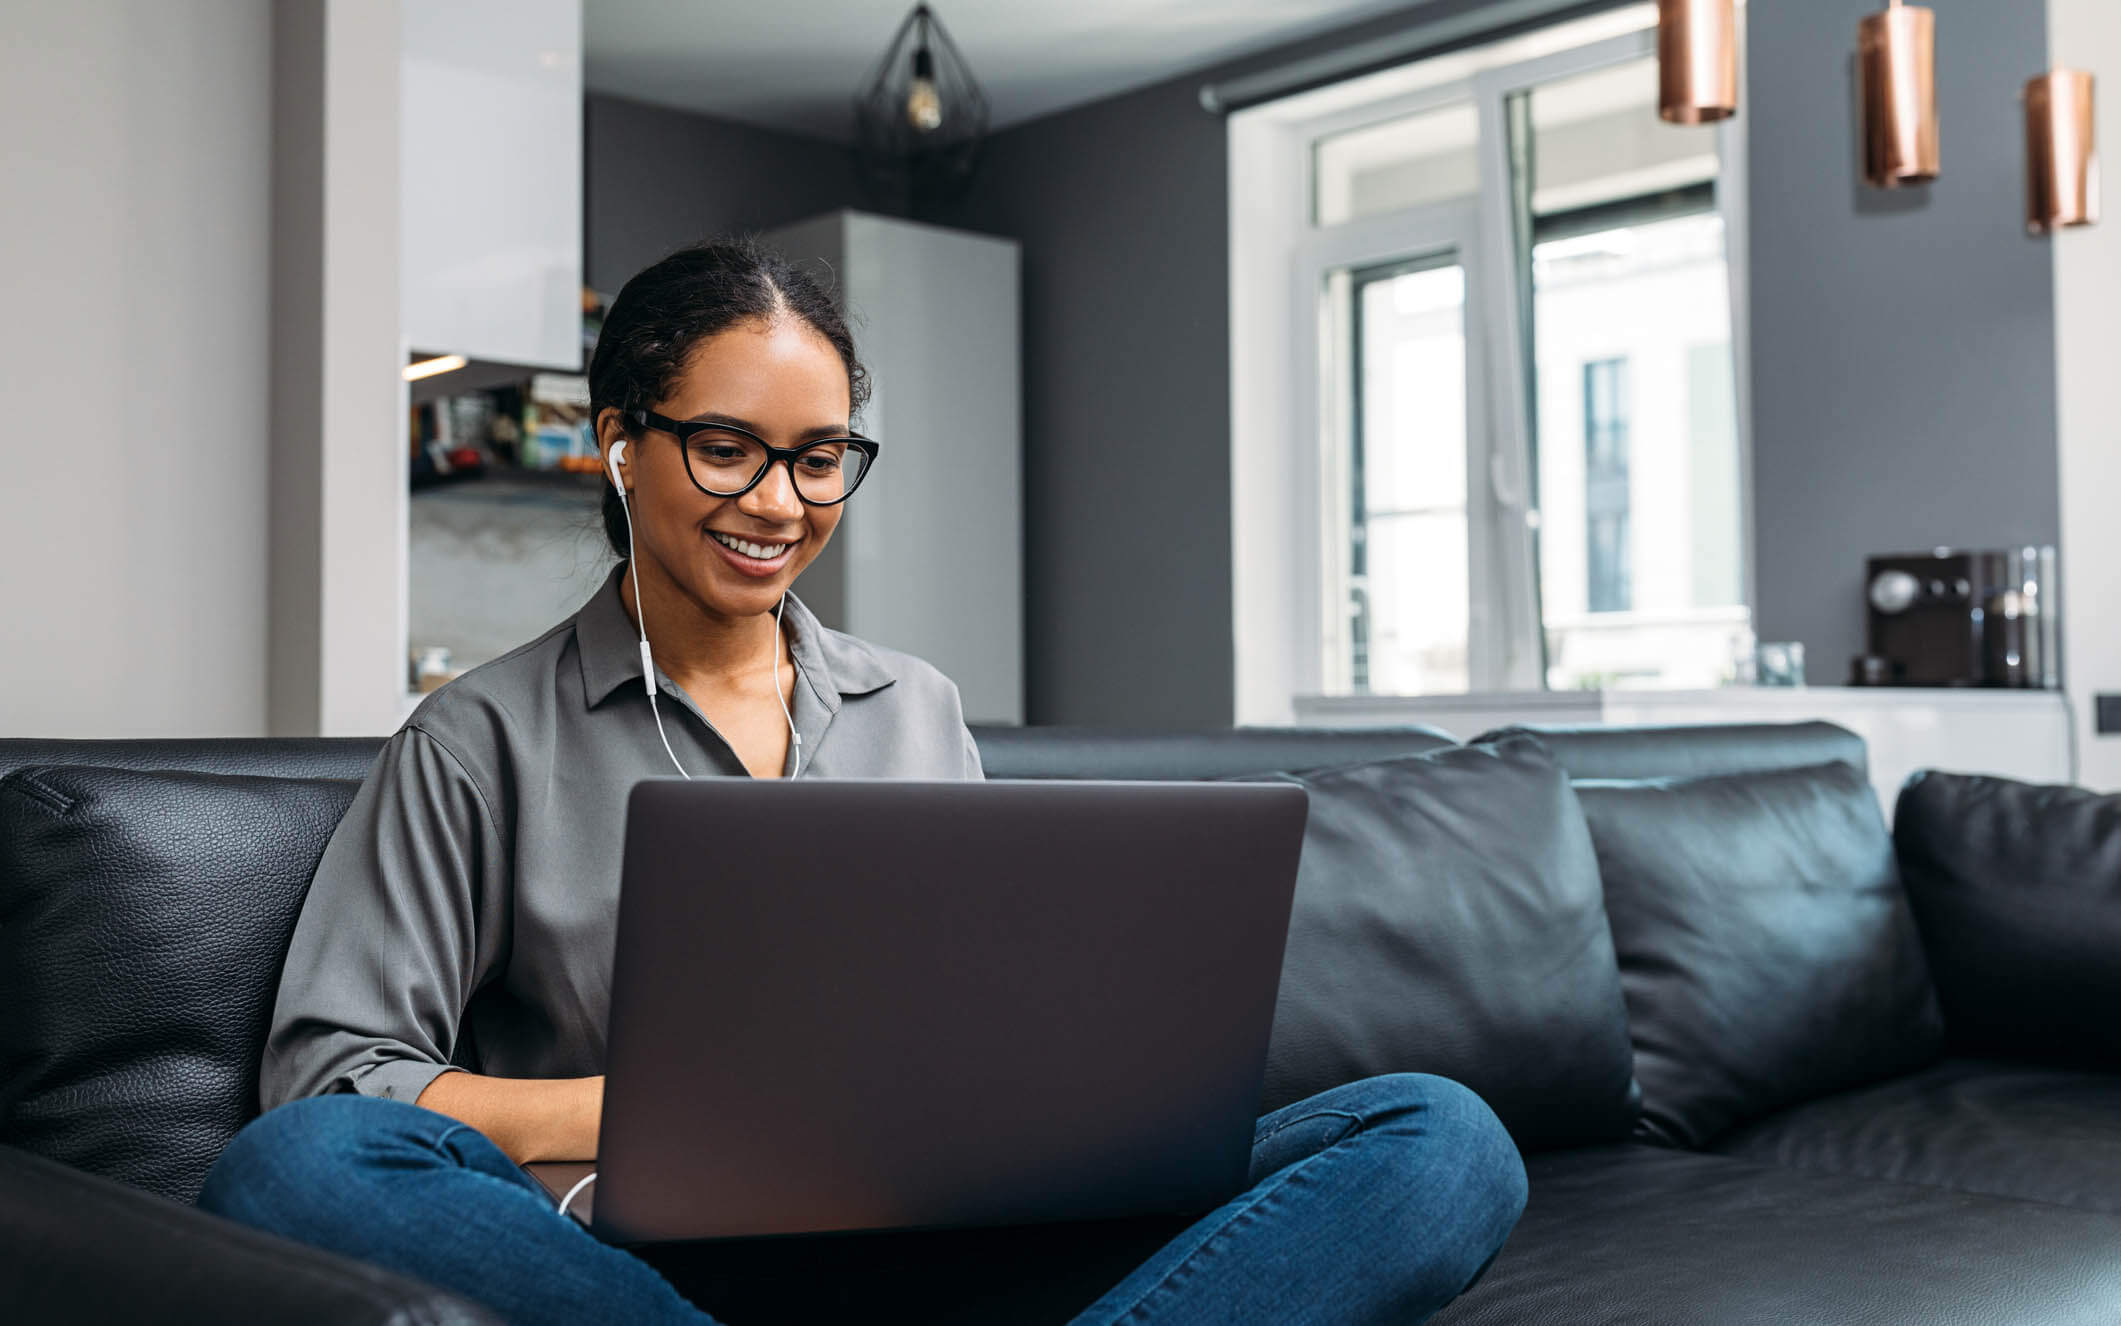 4 Data Protection Tips for Remote Employees in the Work-From-Home Era